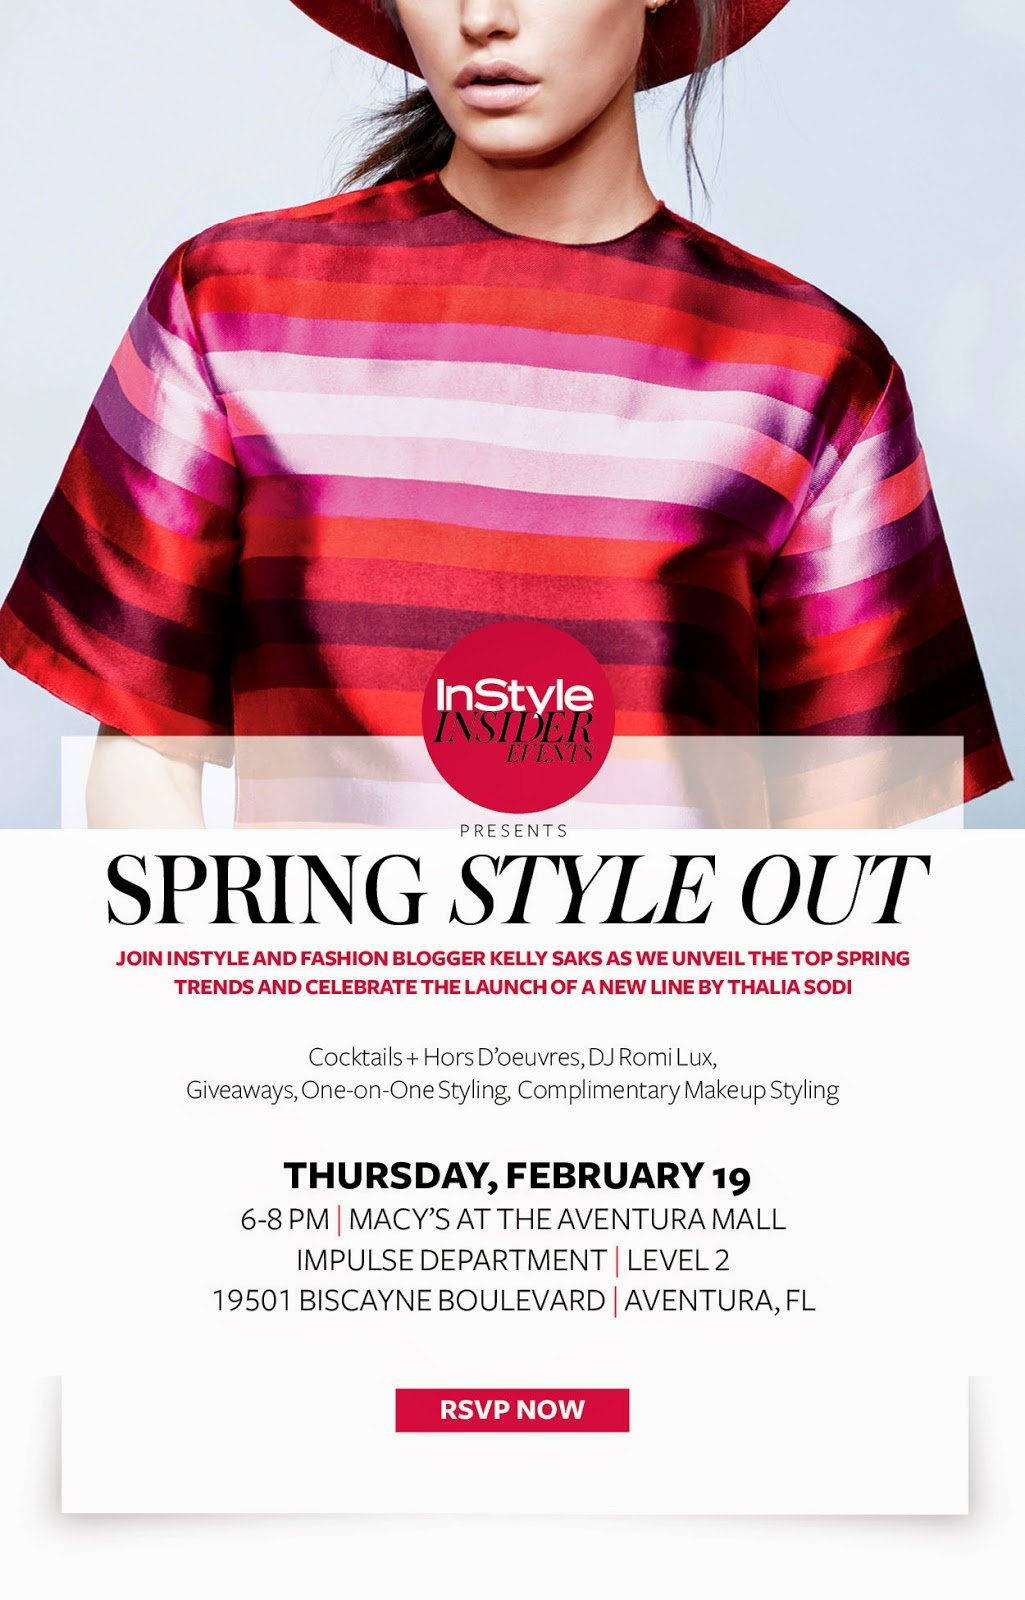 InStyle's Spring Style Out at Macy's Aventura